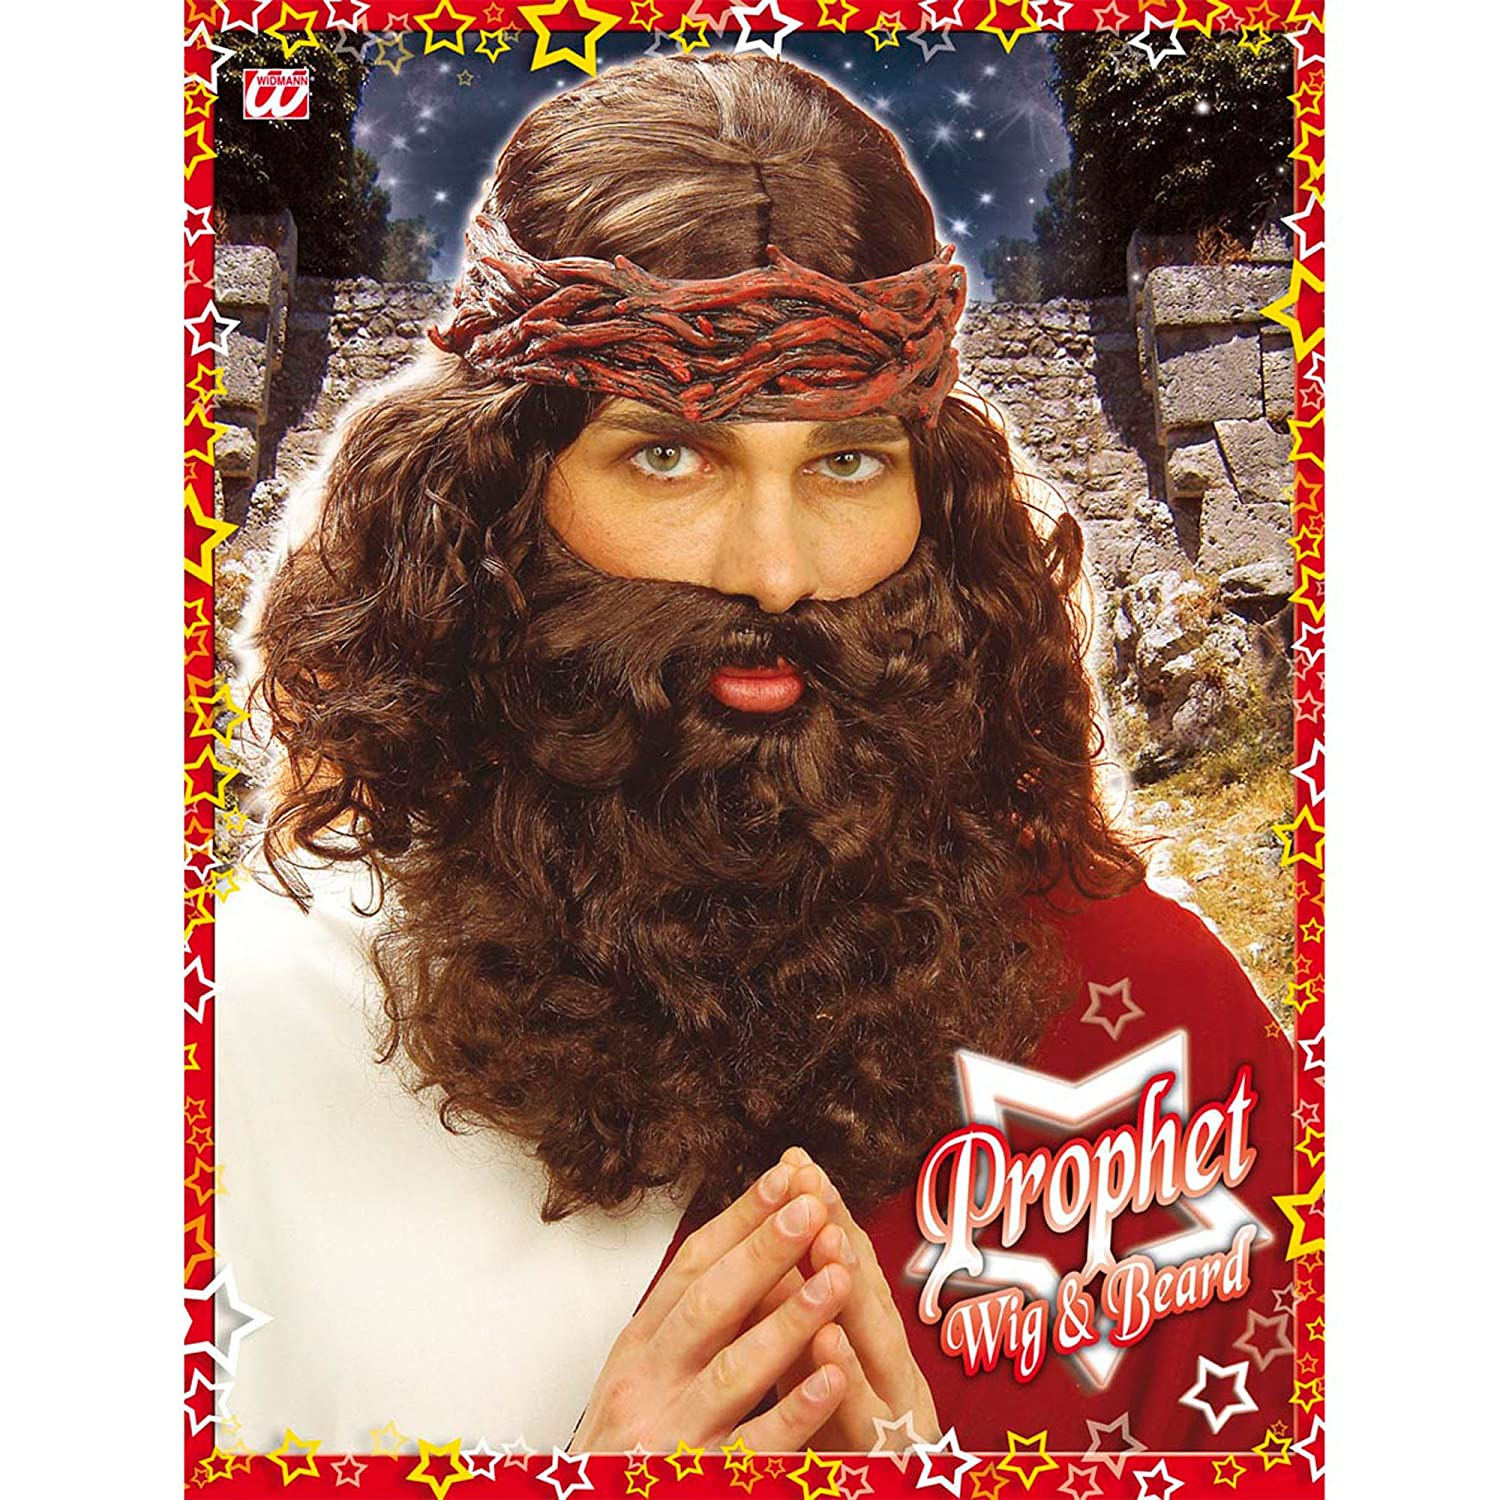 Amazon.com: Jesus & Beard Set Brown Wig For Fancy Dress Costumes & Outfits Accessory: Home Improvement